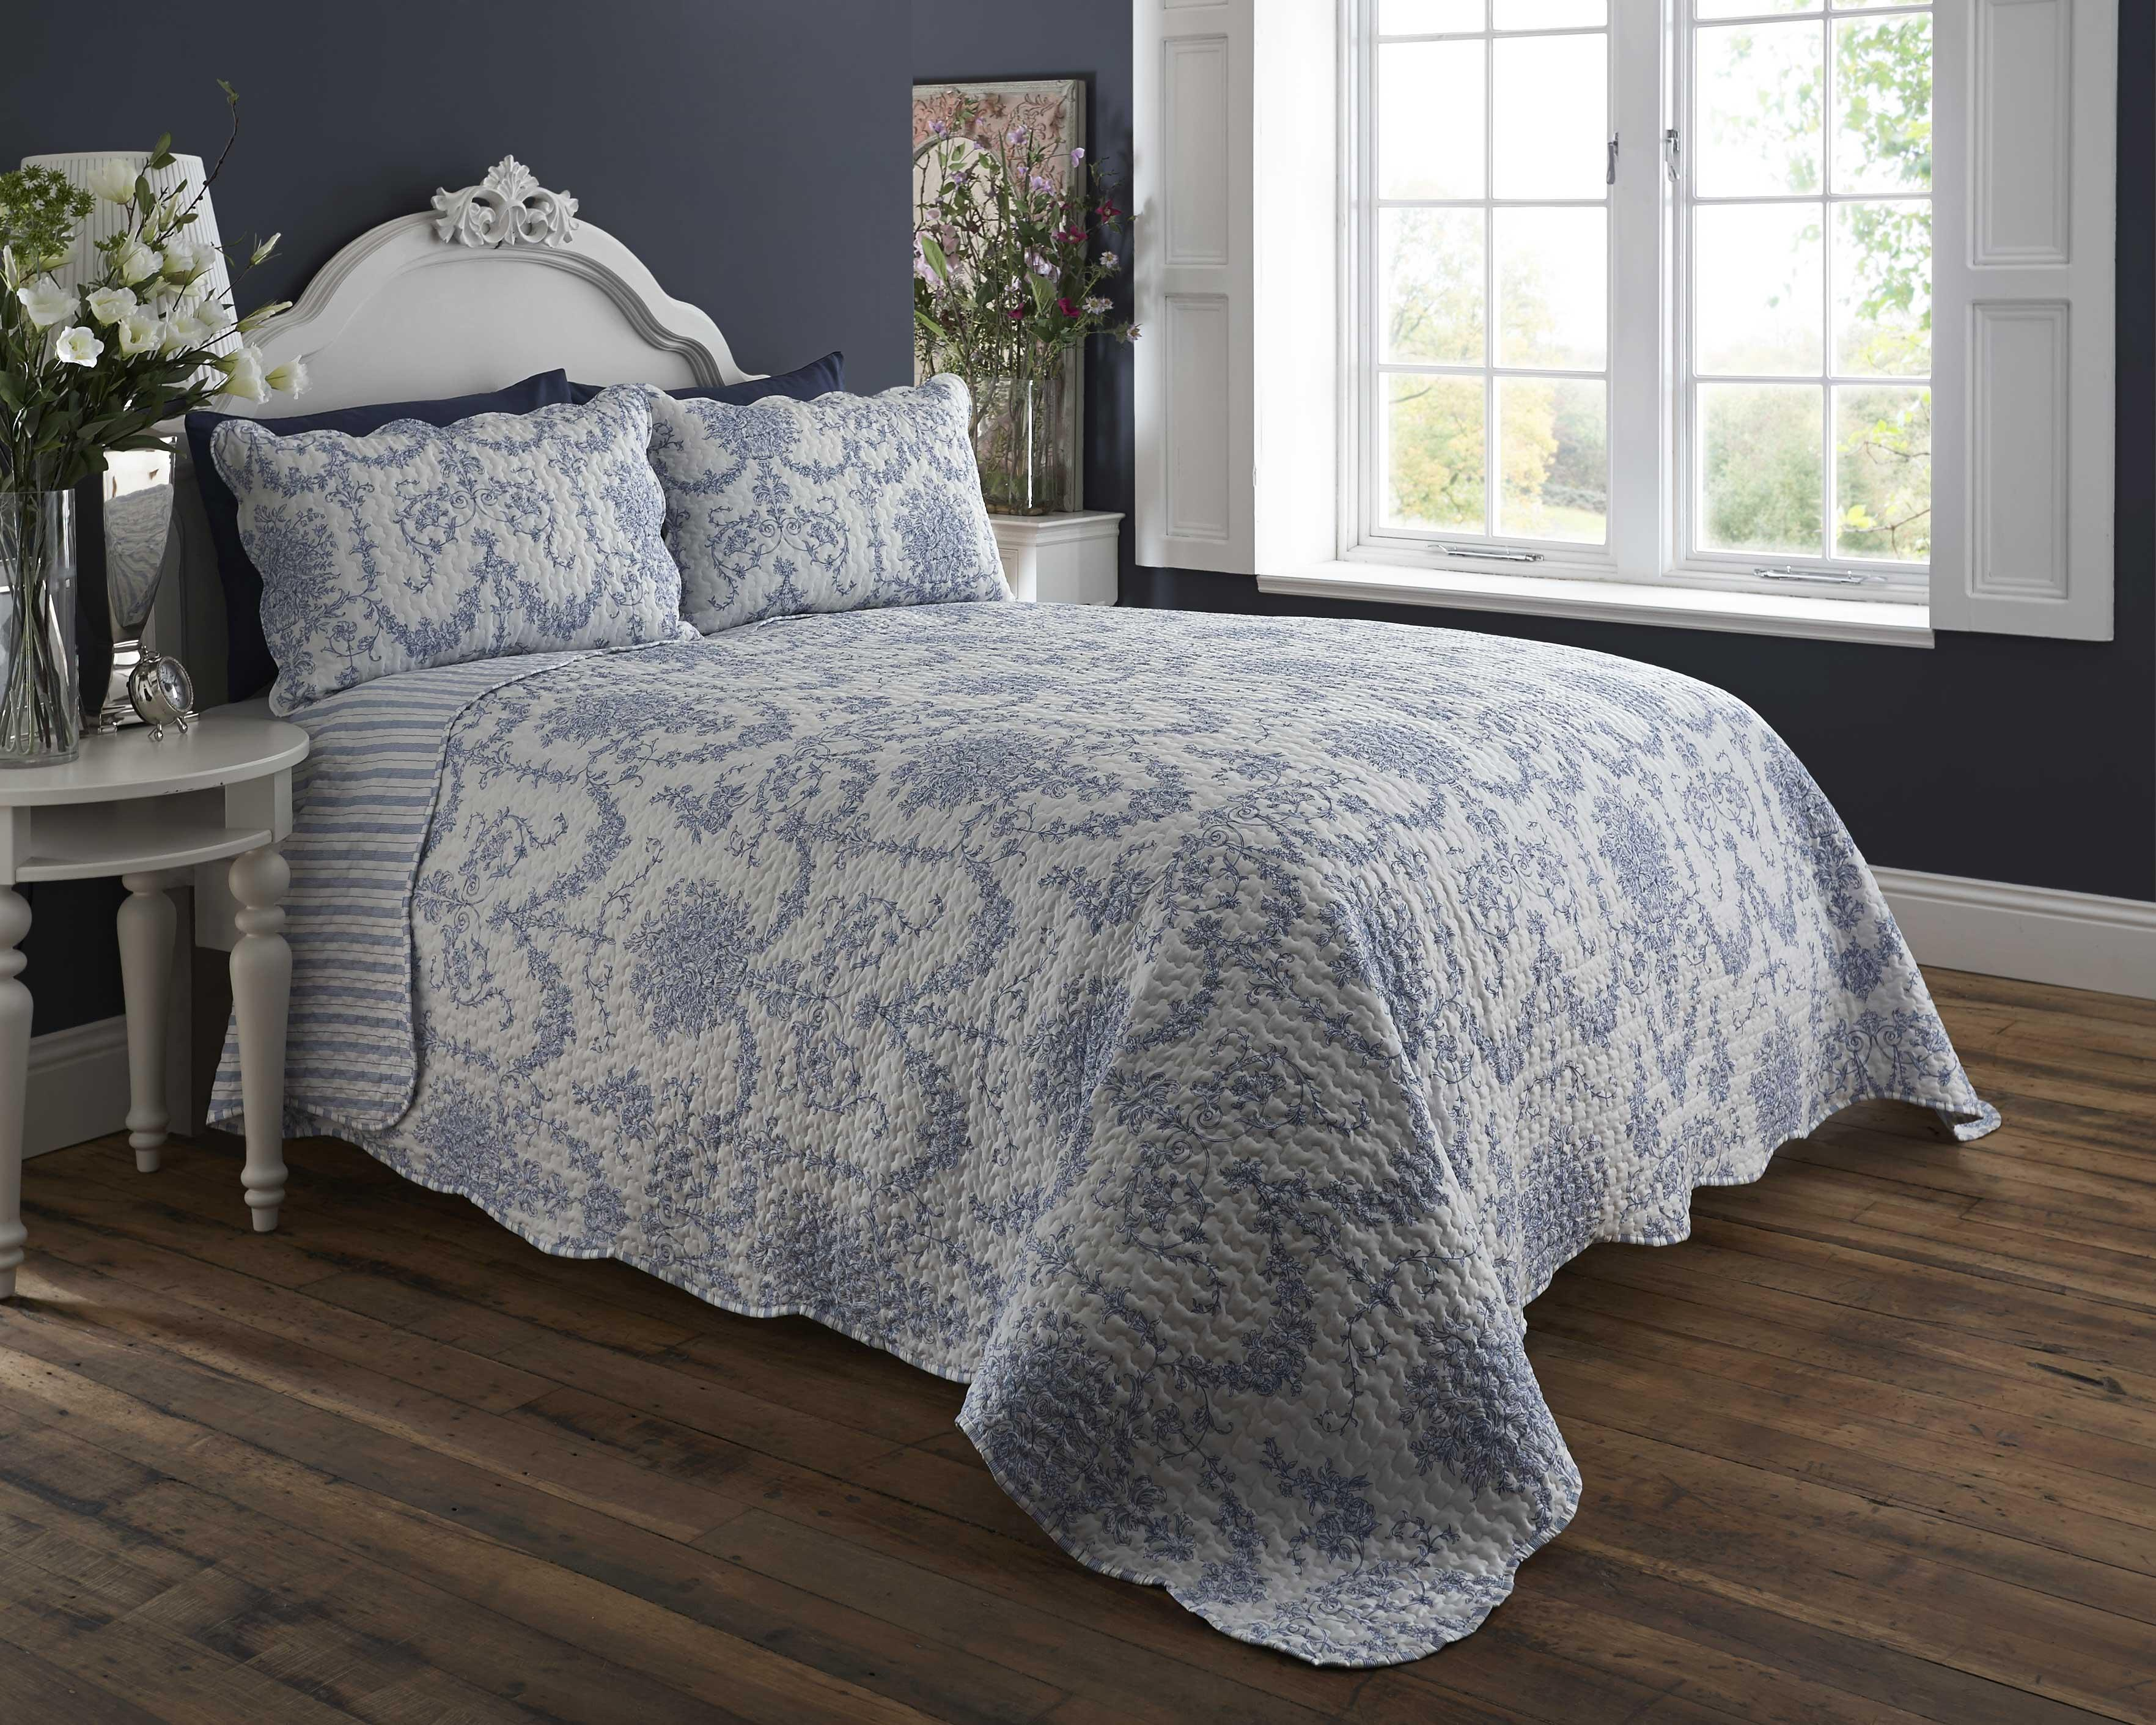 skirt bedspread chenille bedding bodacious and to bed matelasse coverlets grey bedspreads fashioned eileen quilt lazybones ribbon quilts fisher engrossing zq ivory flossy coverlet quilted